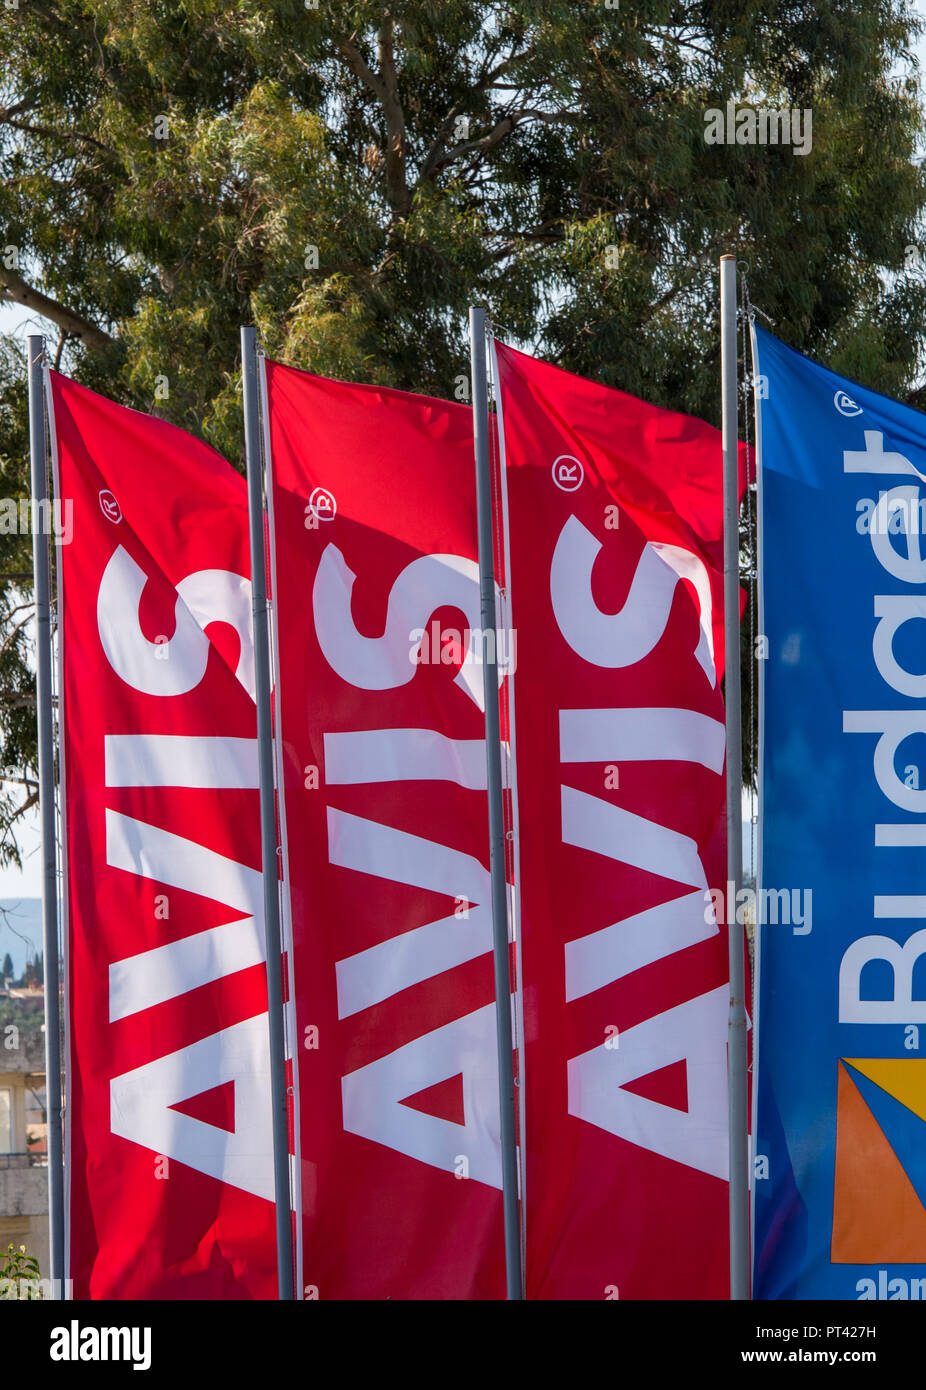 Avis Car Hire Shop Or Depot Flags And Advertising Banners Stock Photo Alamy